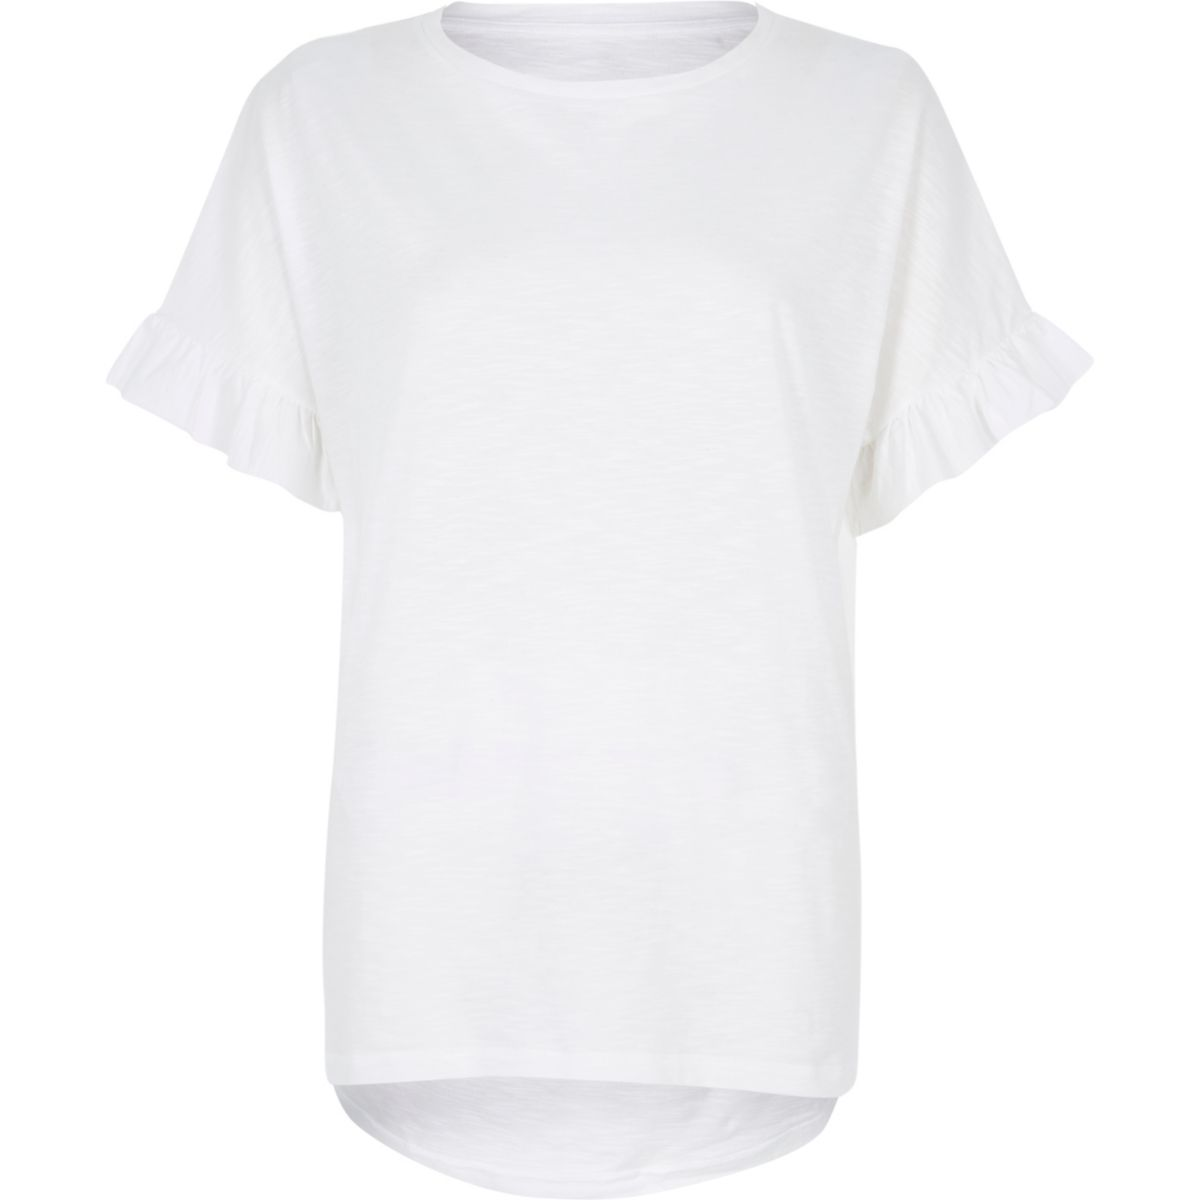 Frill Sleeve White Tee